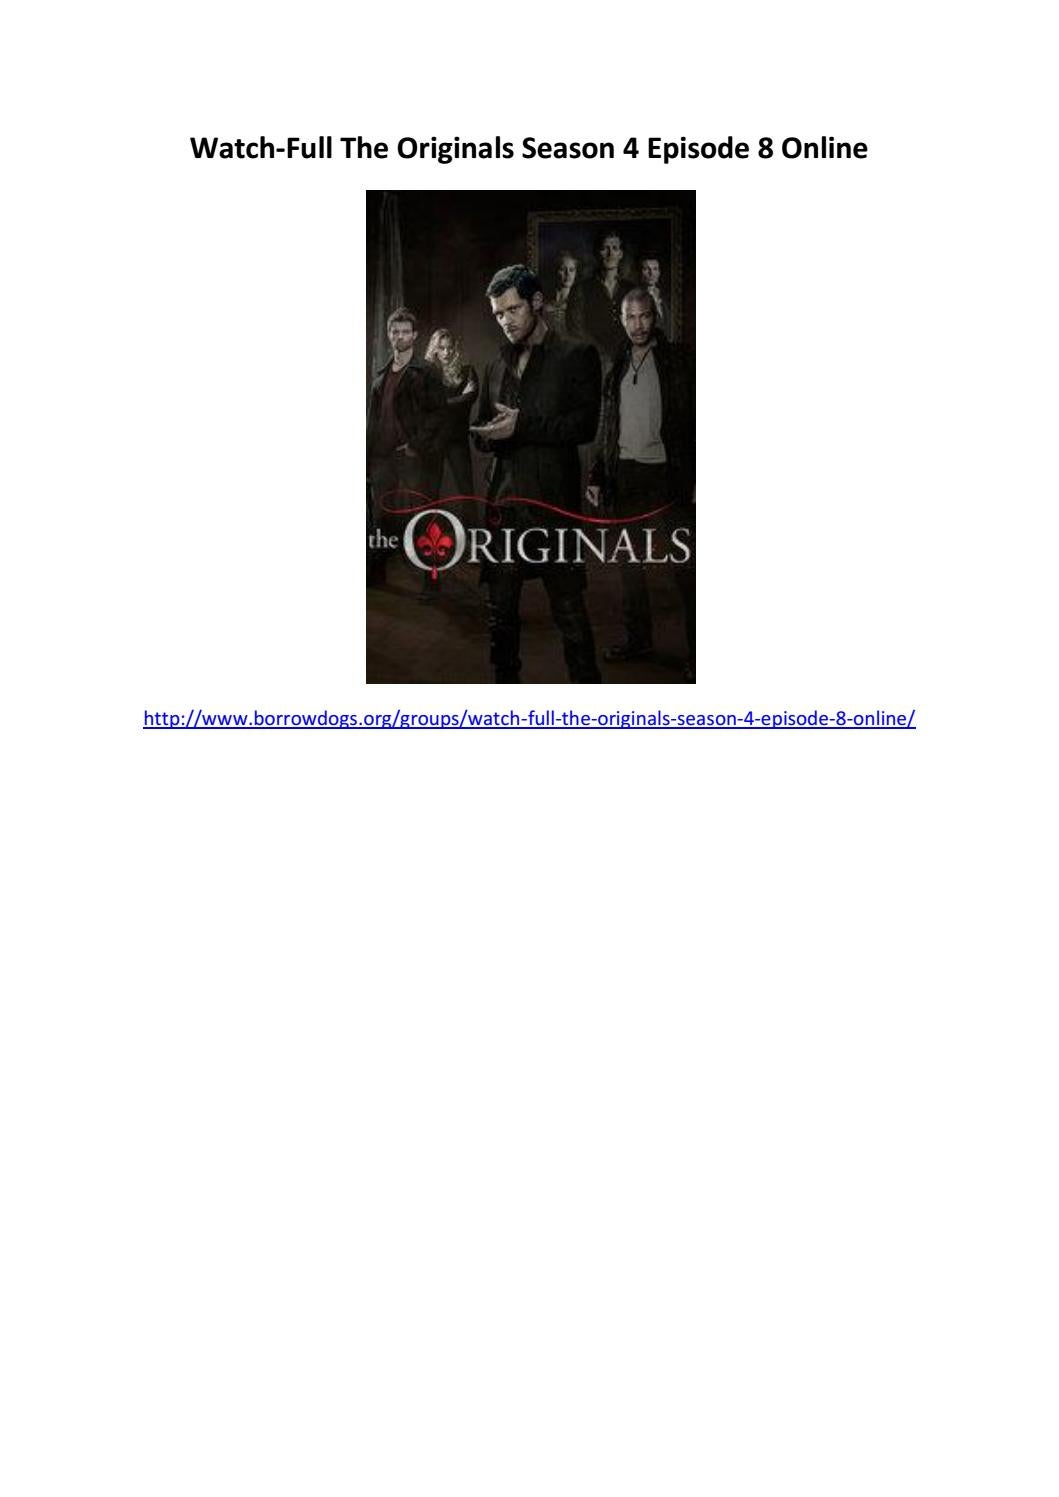 Watch full the originals season 4 episode 8 online